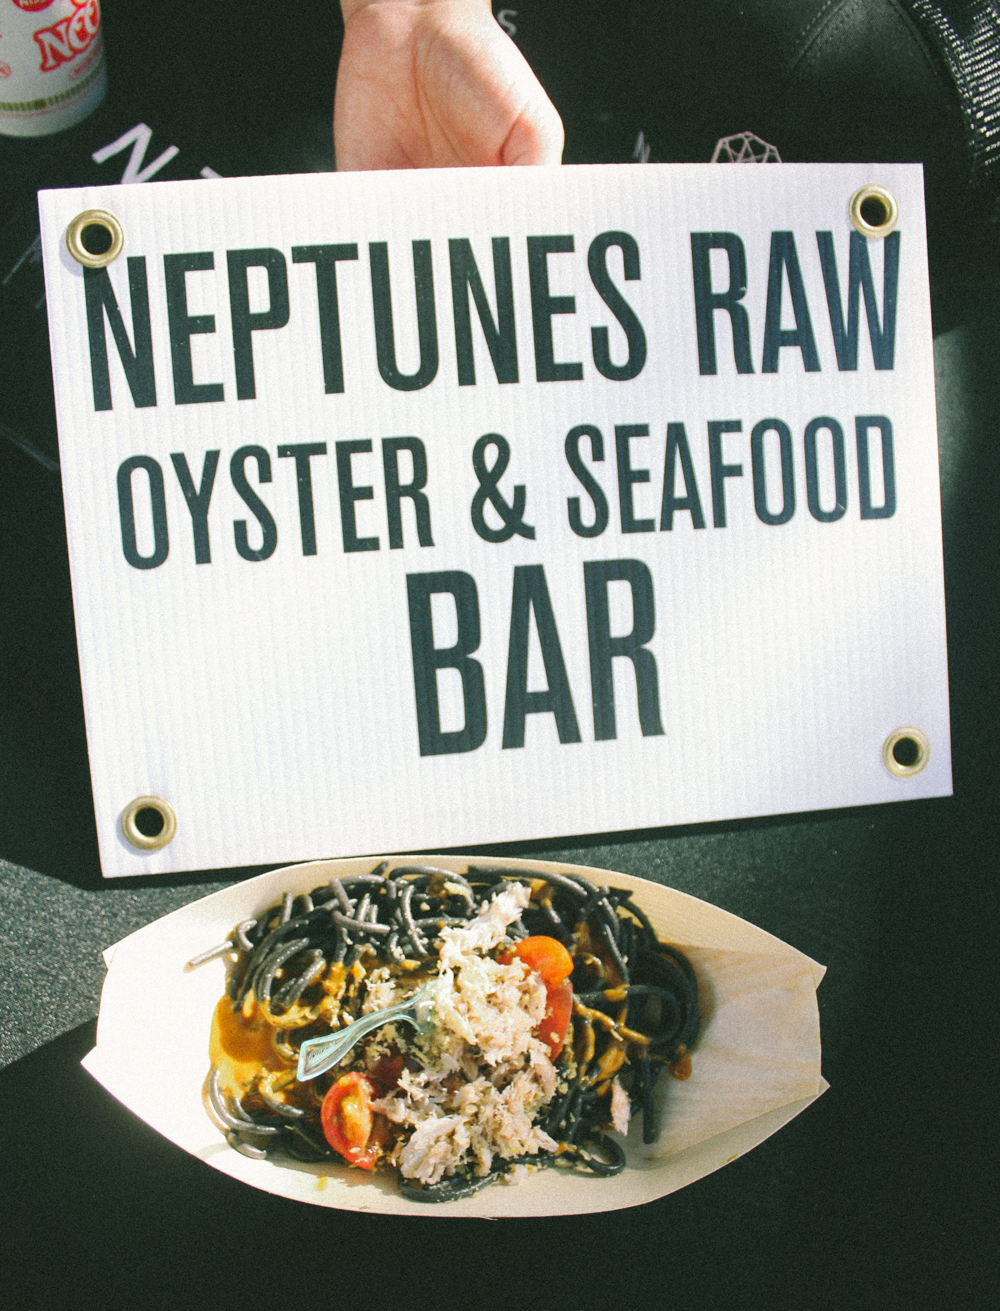 NOODS NOODS NOODS Festival (January 14). Neptunes Raw Oyster & Seafood Bar. / Photo: © Emil Ravelo for SUSPEND Magazine.